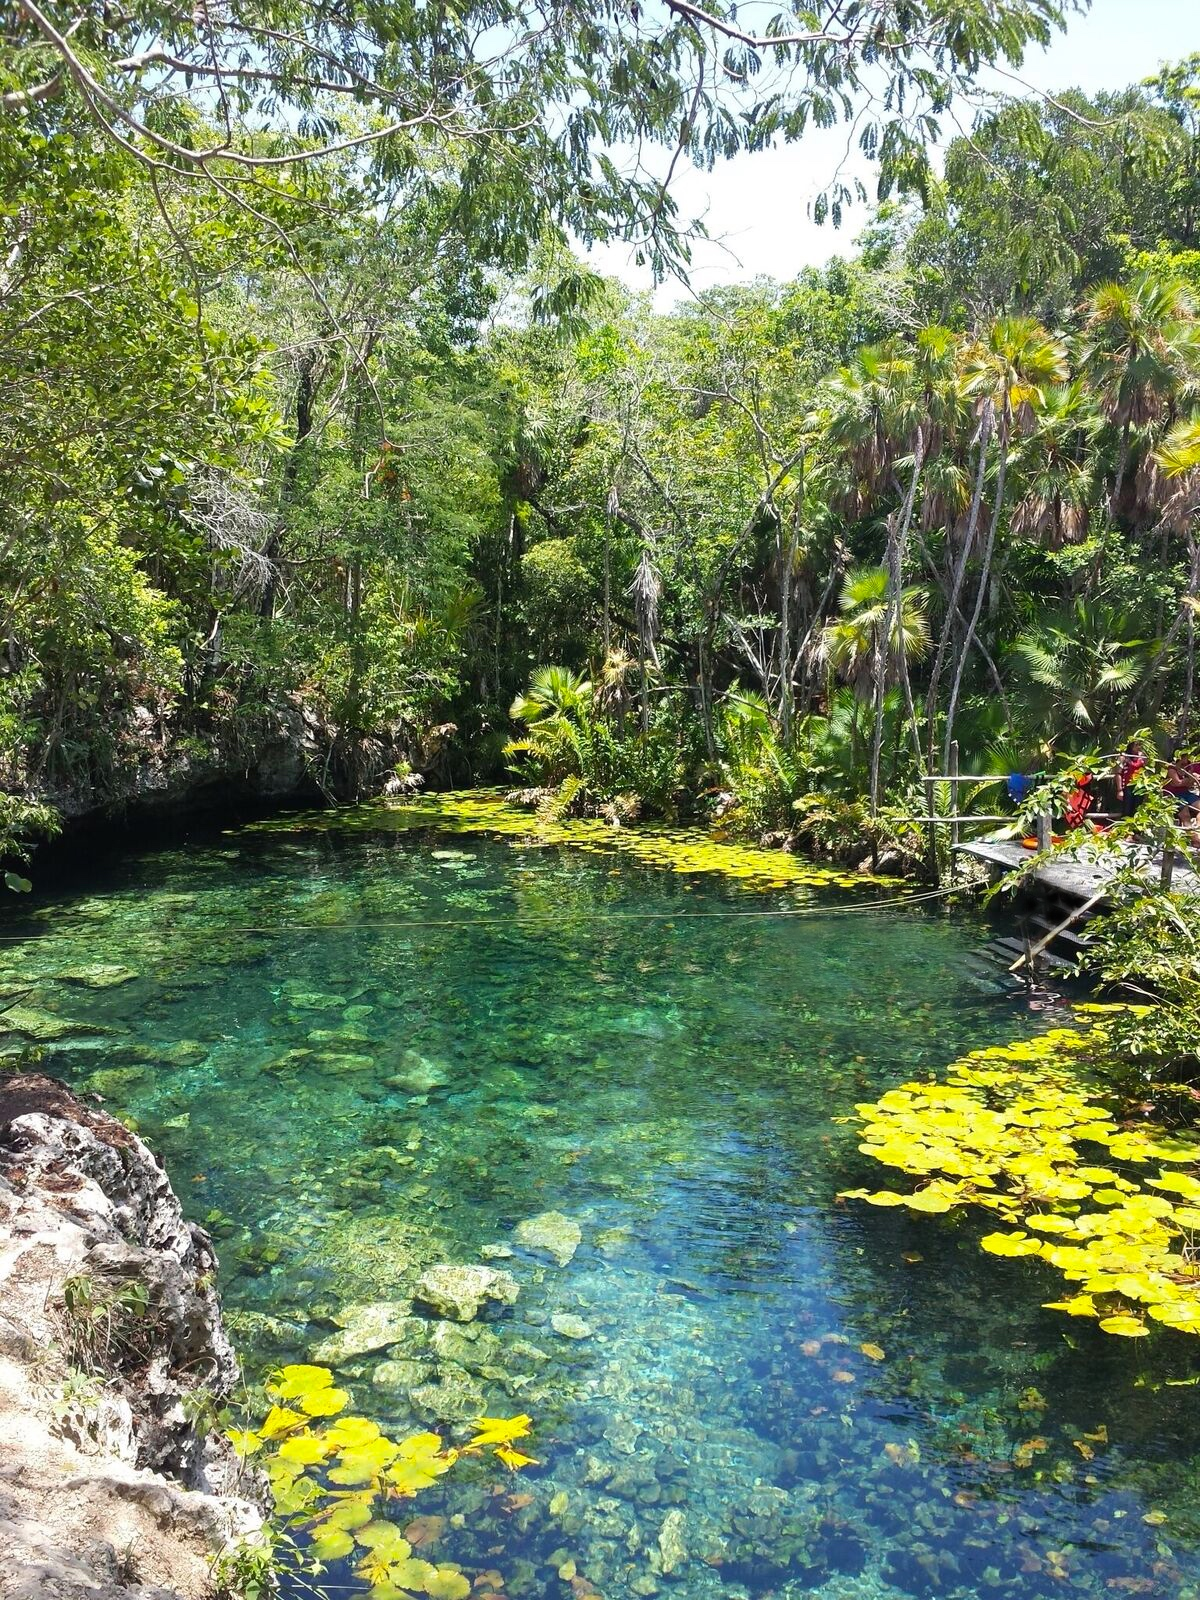 When leaving Dos Ojos ask for directions to Cenote Nicte-Ha, access is included in your Dos Ojos entry price and it is well worth a visit.